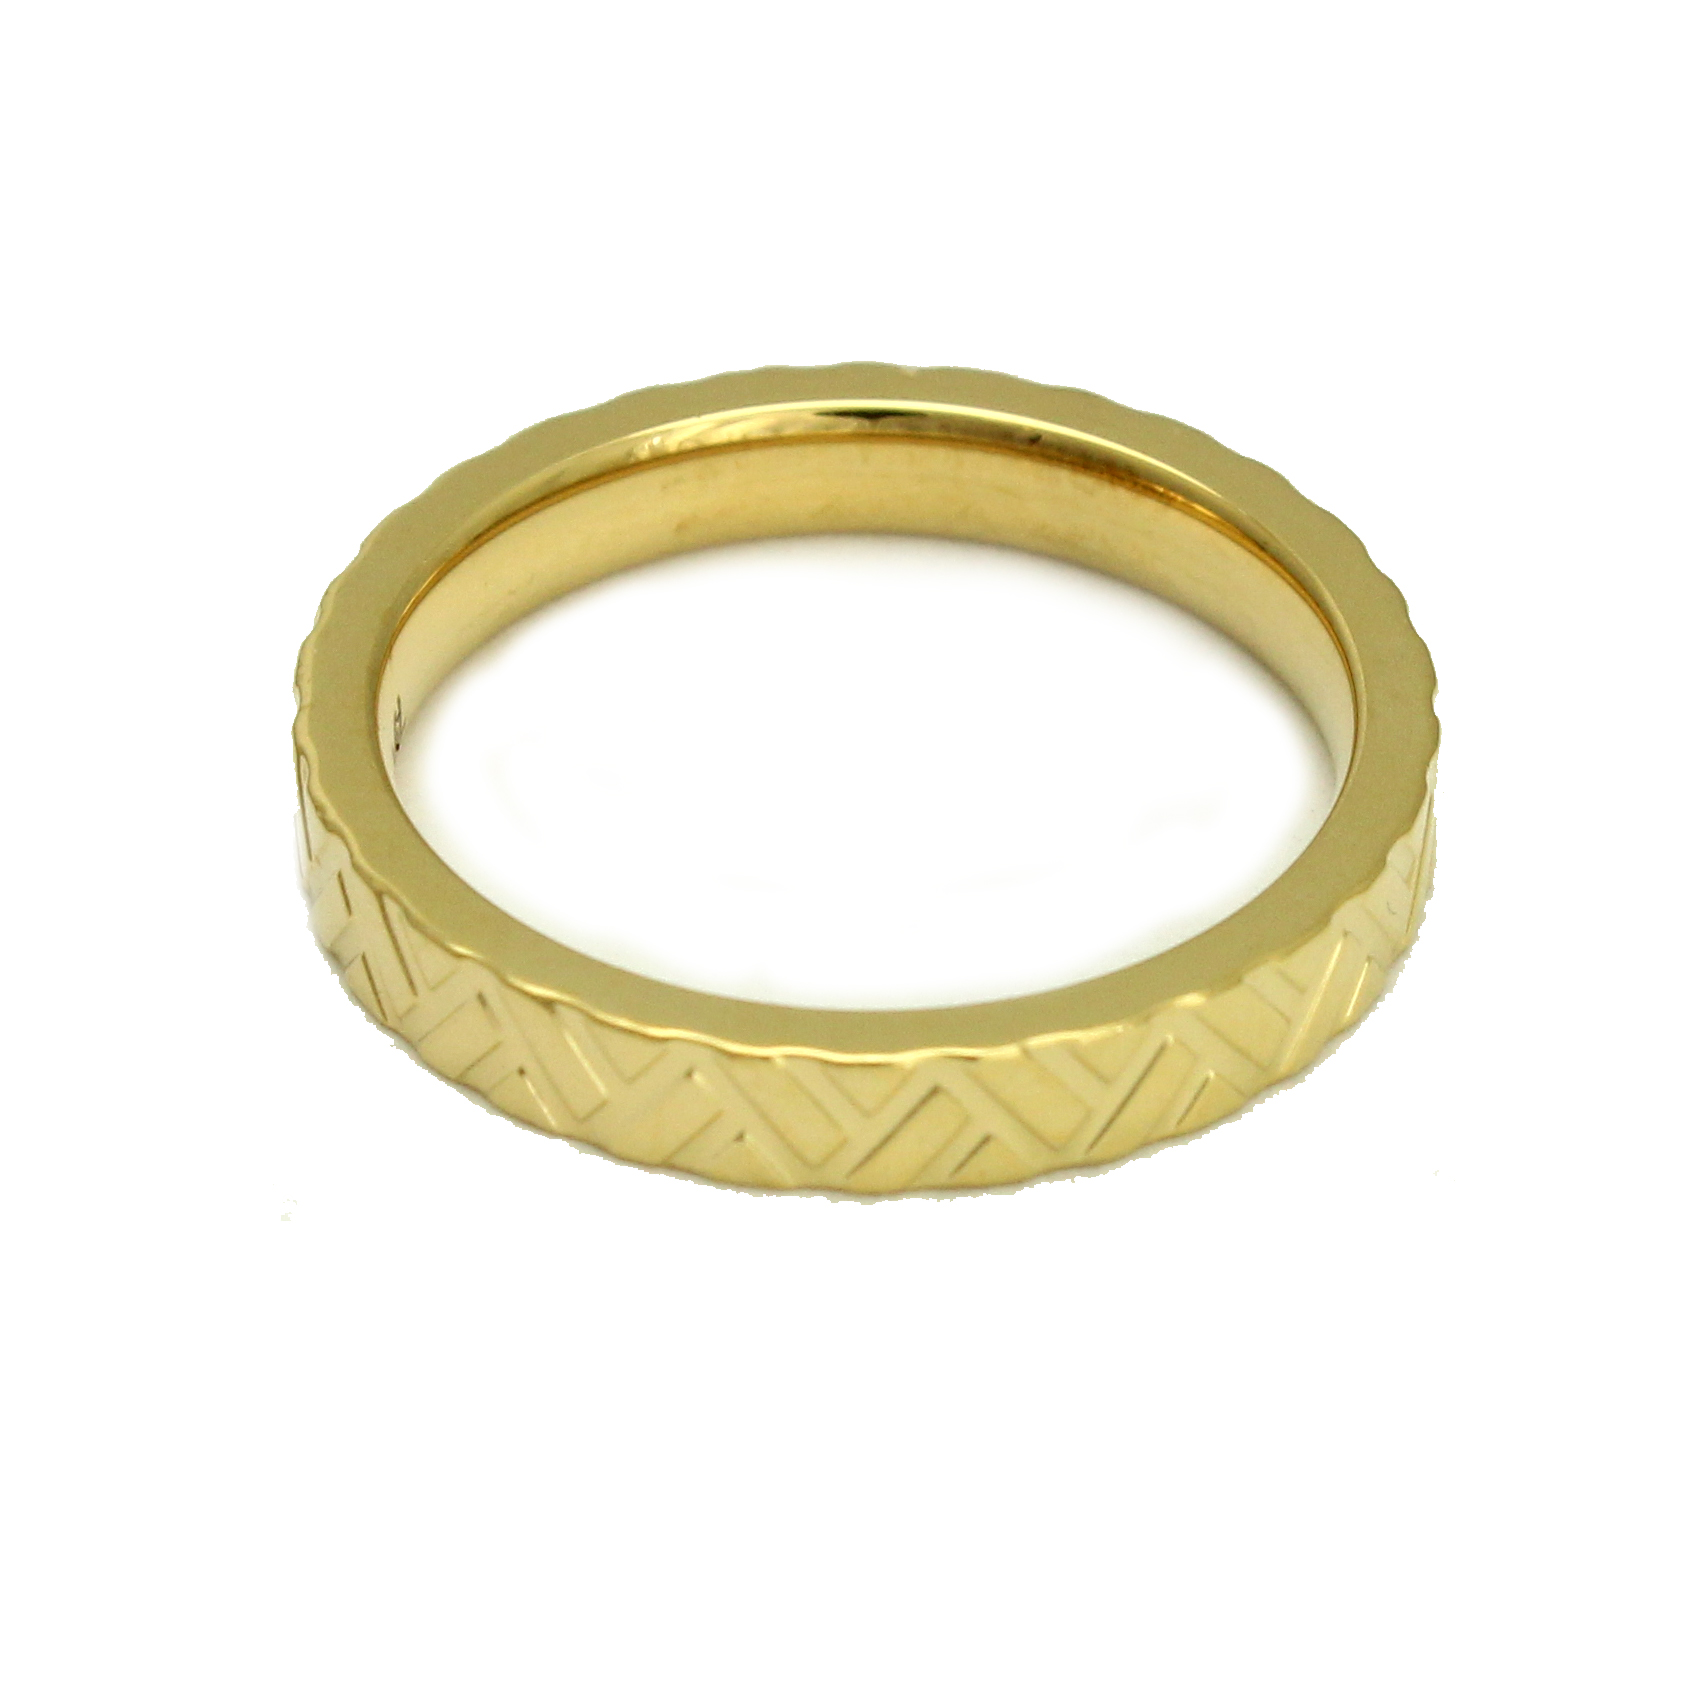 Rose Gold Plated 316L Stainless Steel Alexandria Egyptian Trendy Fashion Ring, Size 6.5